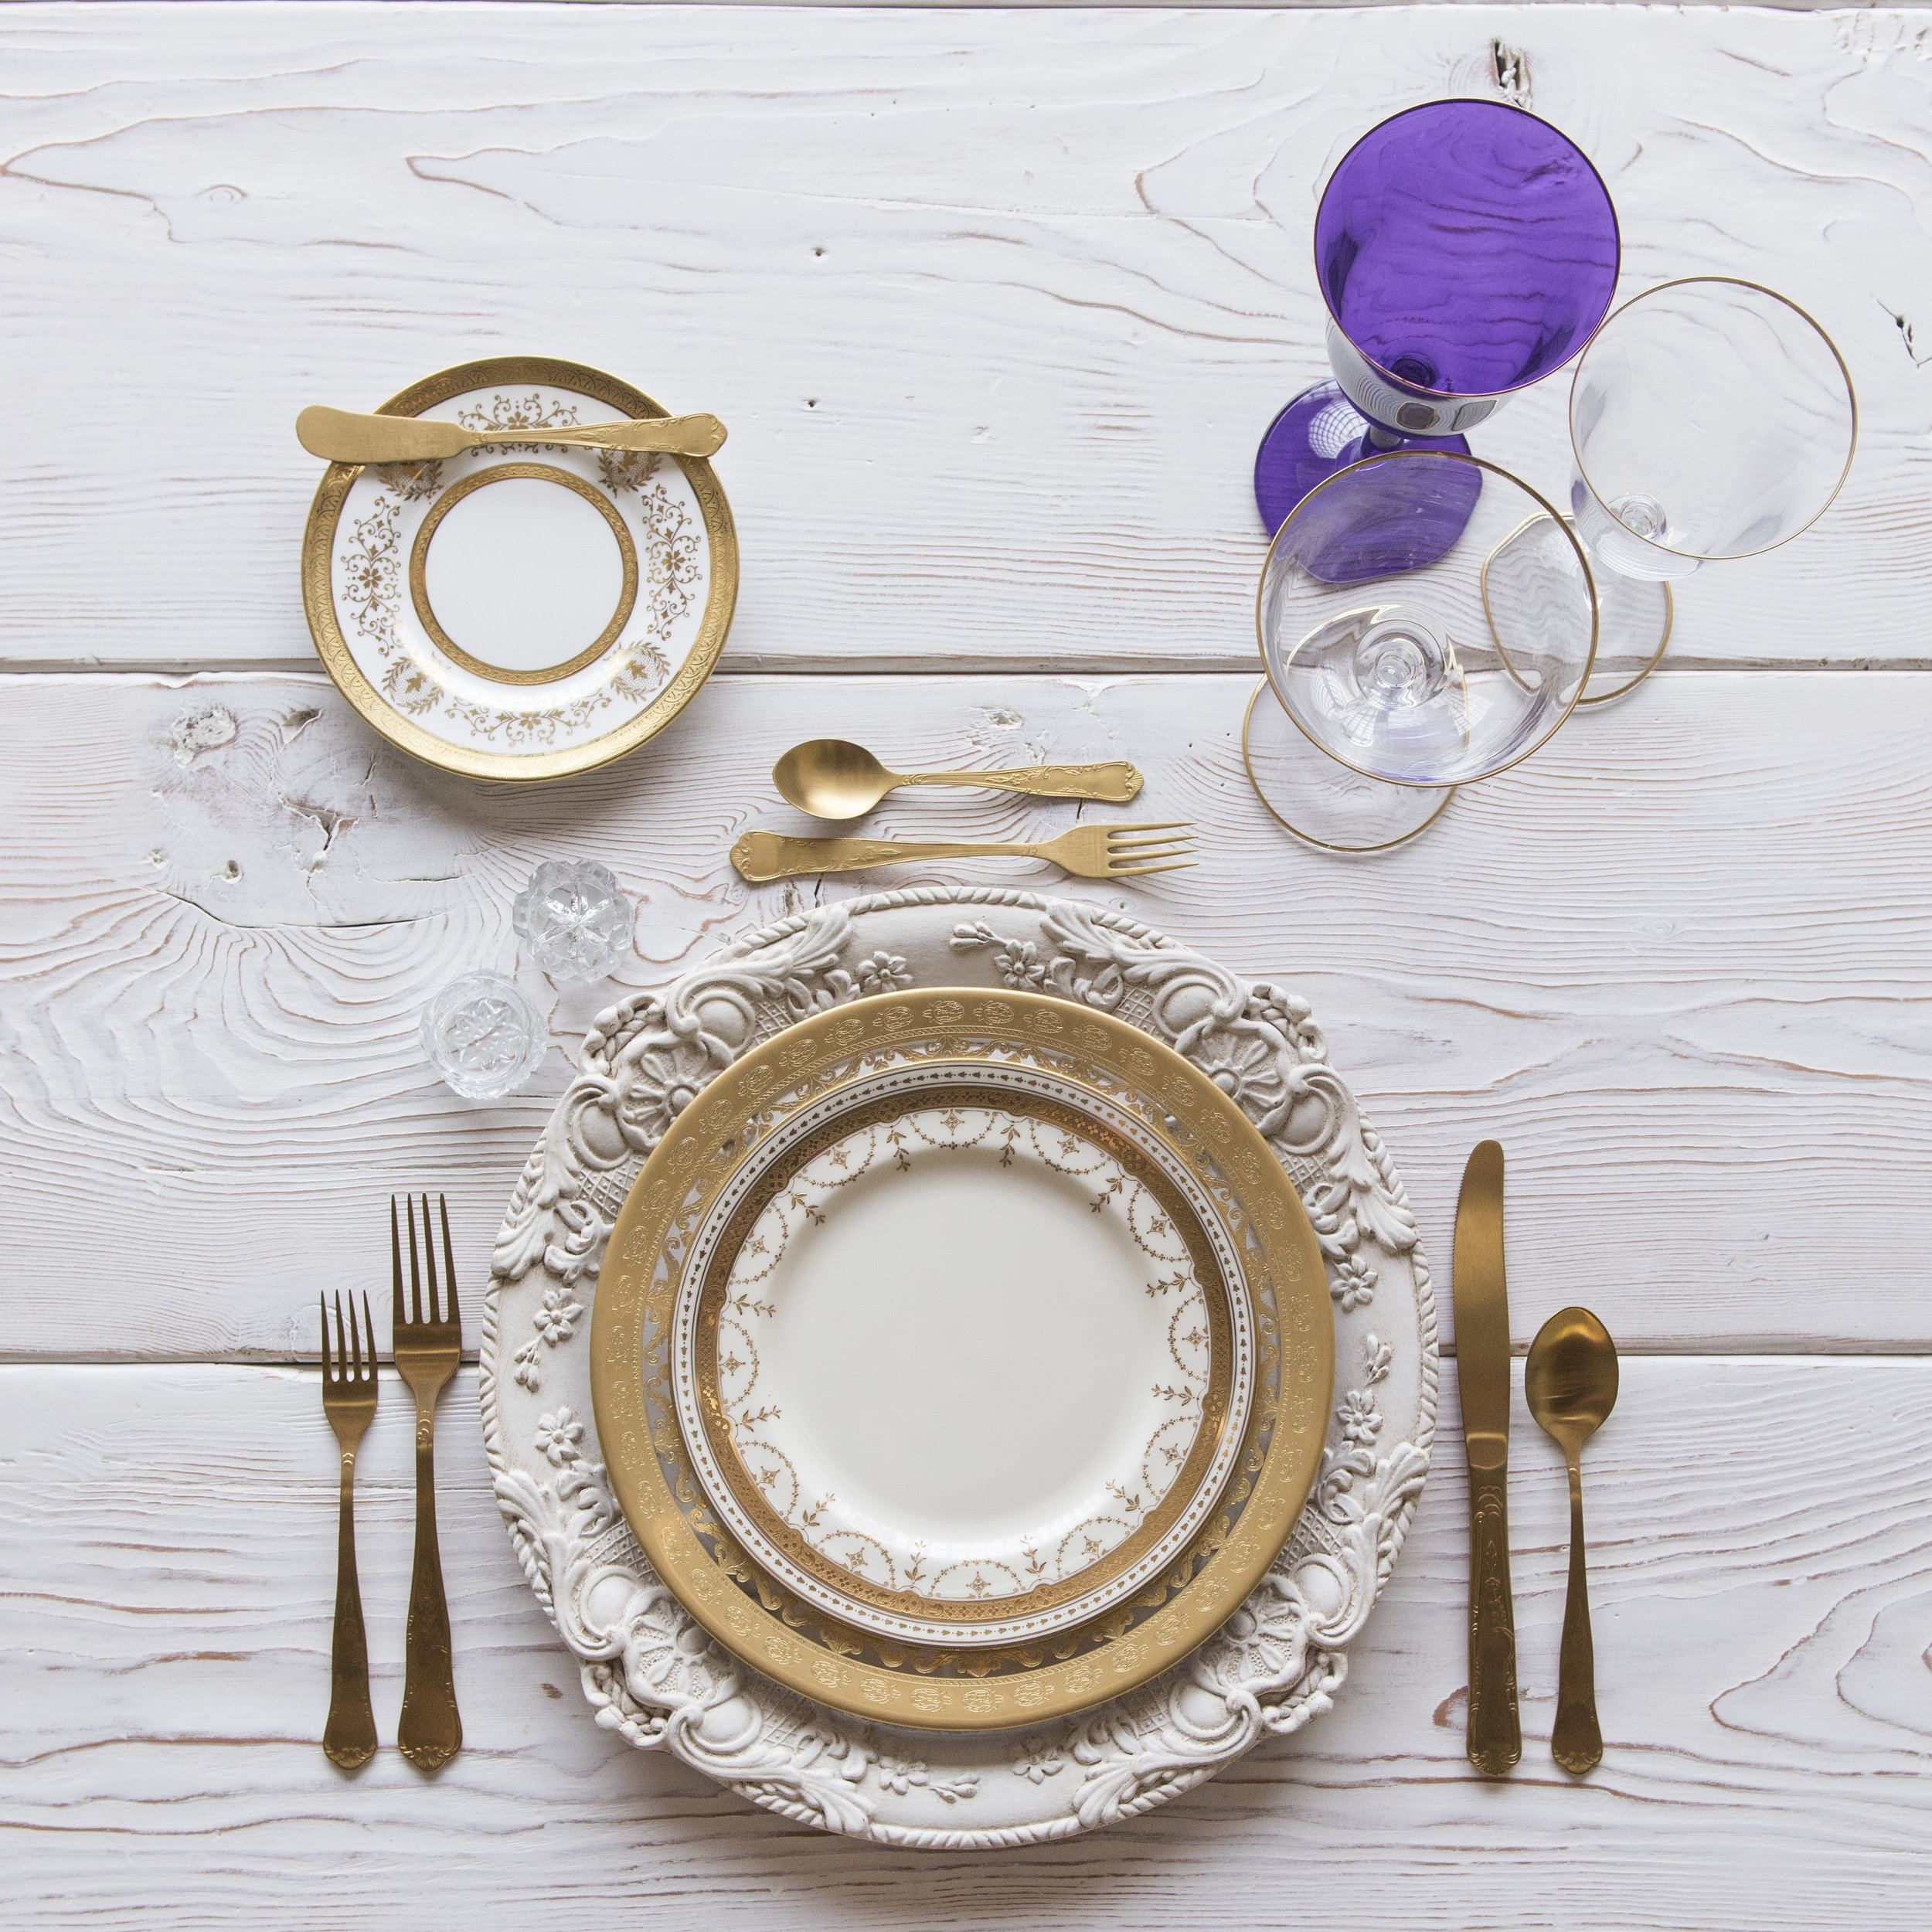 RENT: Verona Chargers in Antique White + Versailles Glass Dinnerware in 24k Gold + Crown Gold Collection Vintage China + Chateau Flatware in Matte Gold + Chloe 24k Gold Rimmed Stemware + Chloe 24k Gold Rimmed Goblet in Purple + Antique Crystal Salt Cellars  SHOP:Verona Chargers in Antique White +Chloe 24k Gold Rimmed Stemware